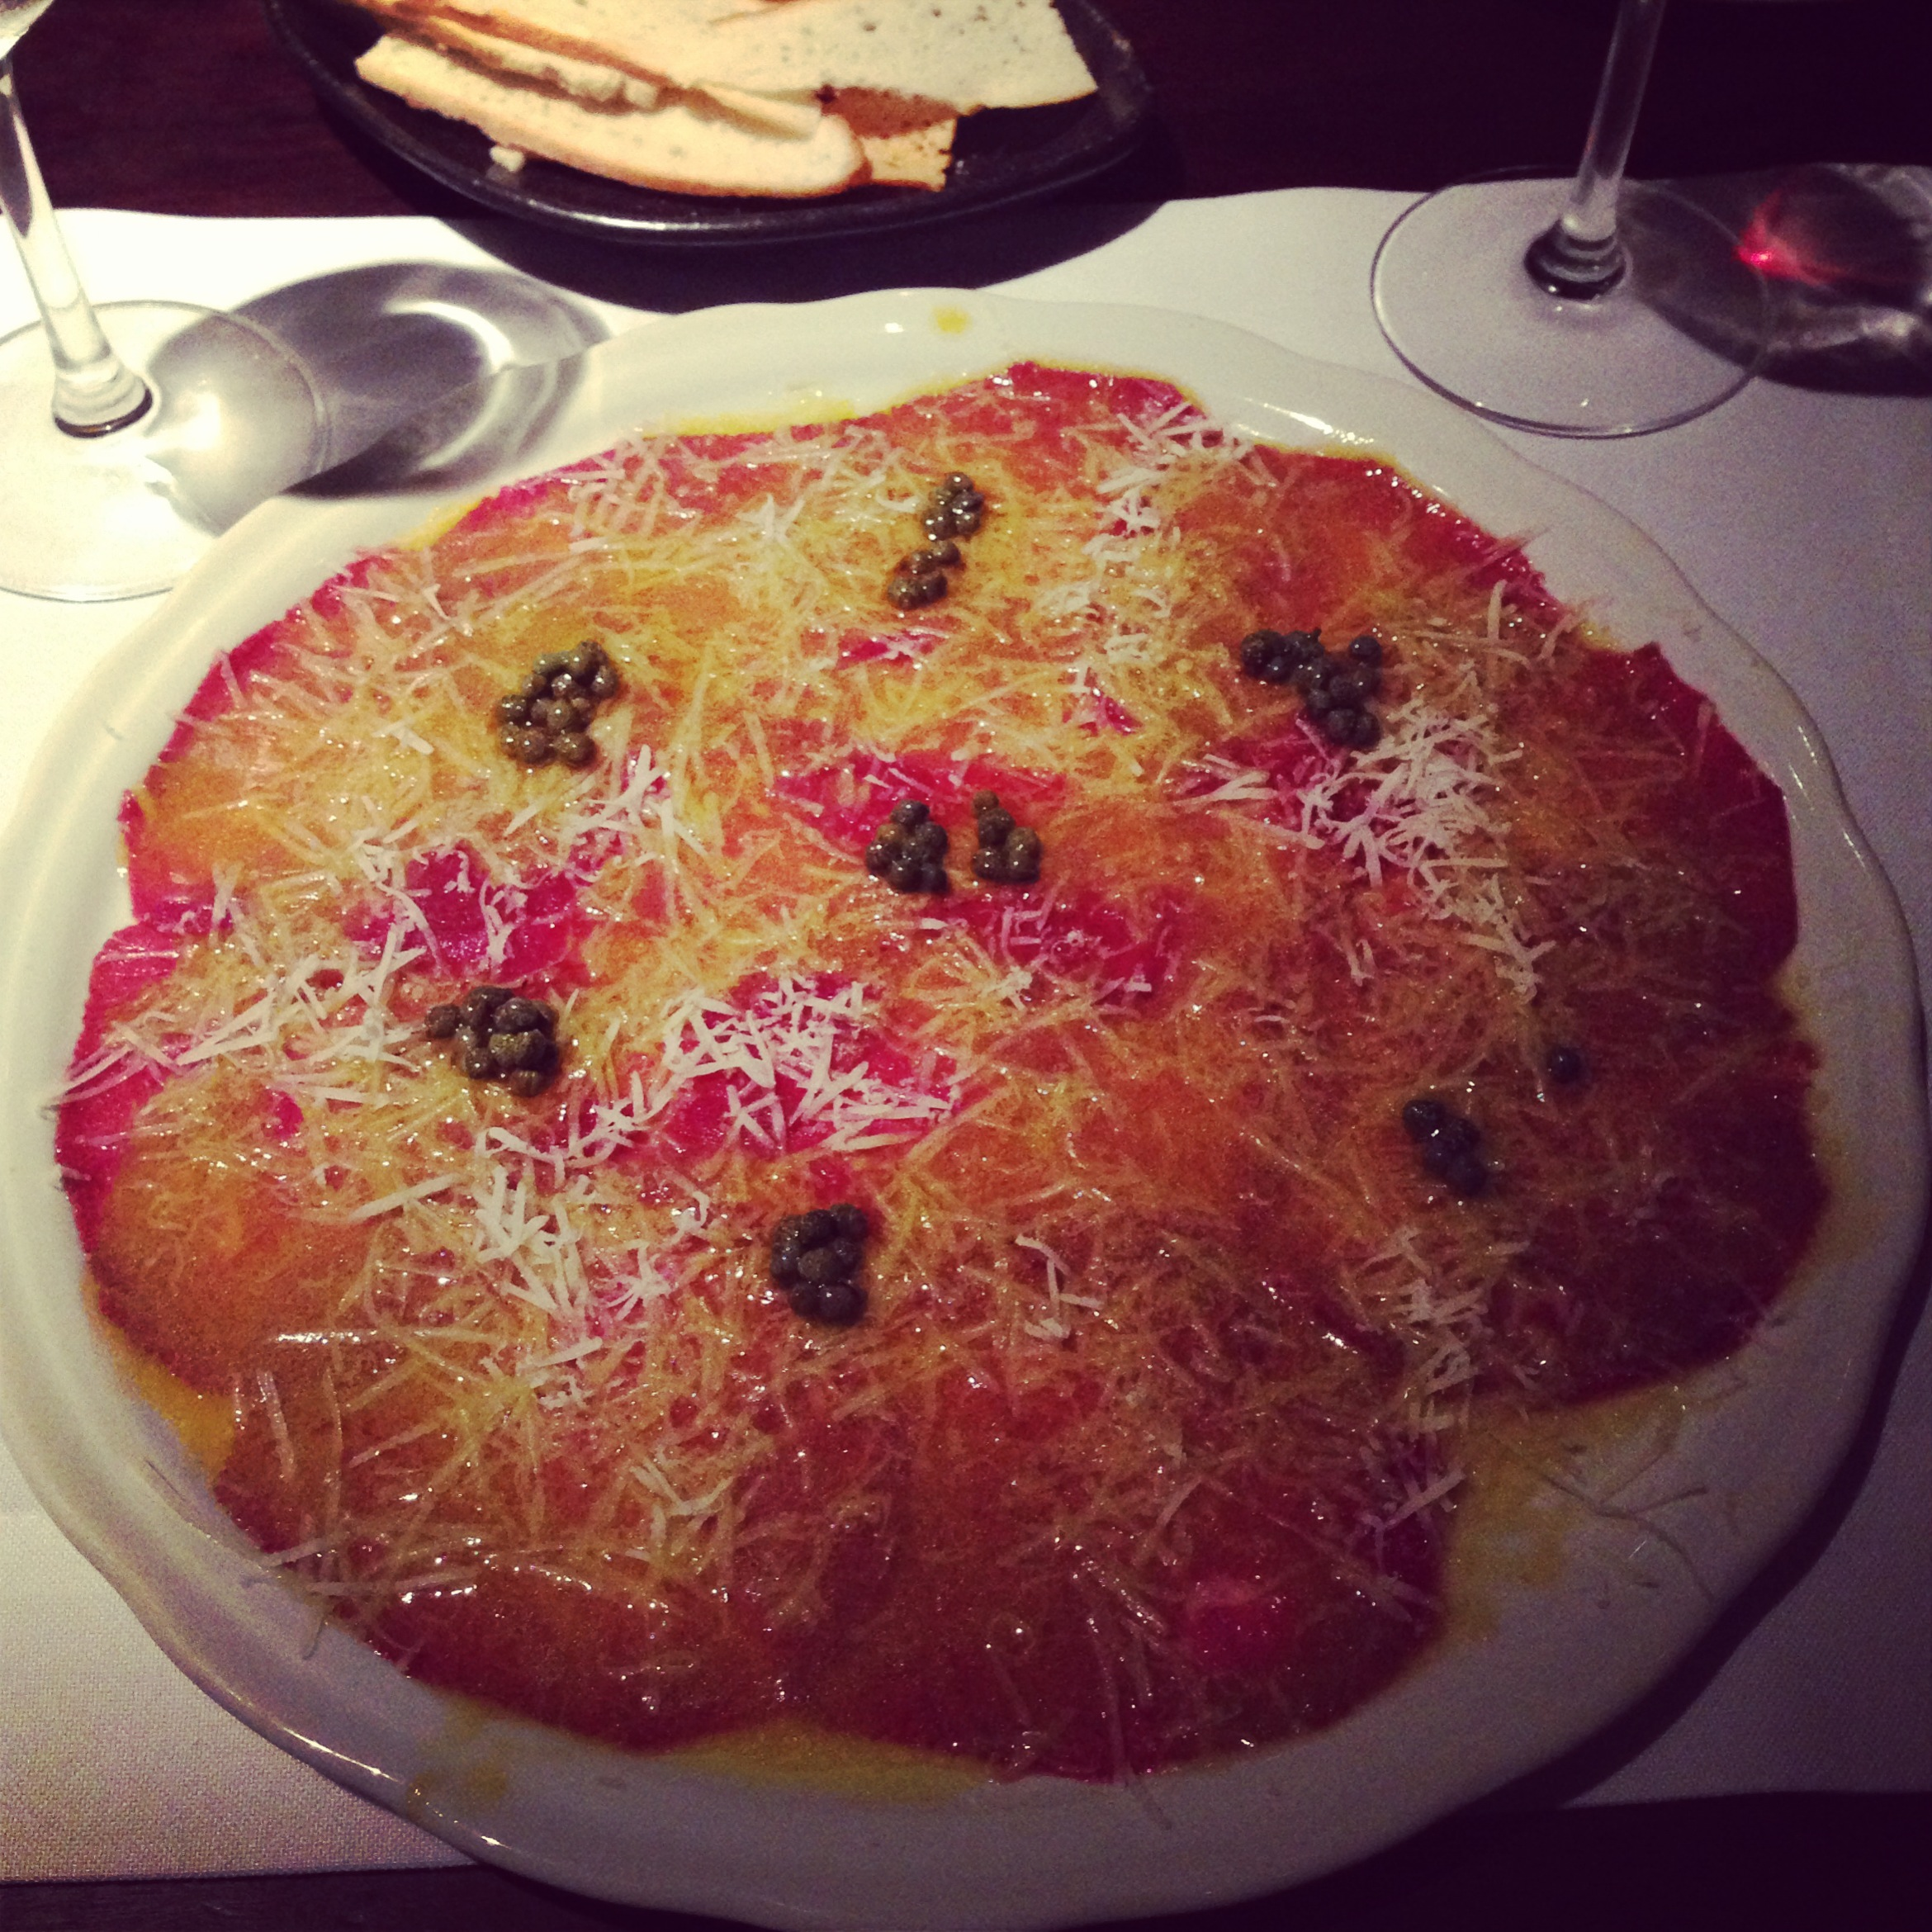 CARPACCIO DO RUBAIYAT FARIA LIMA